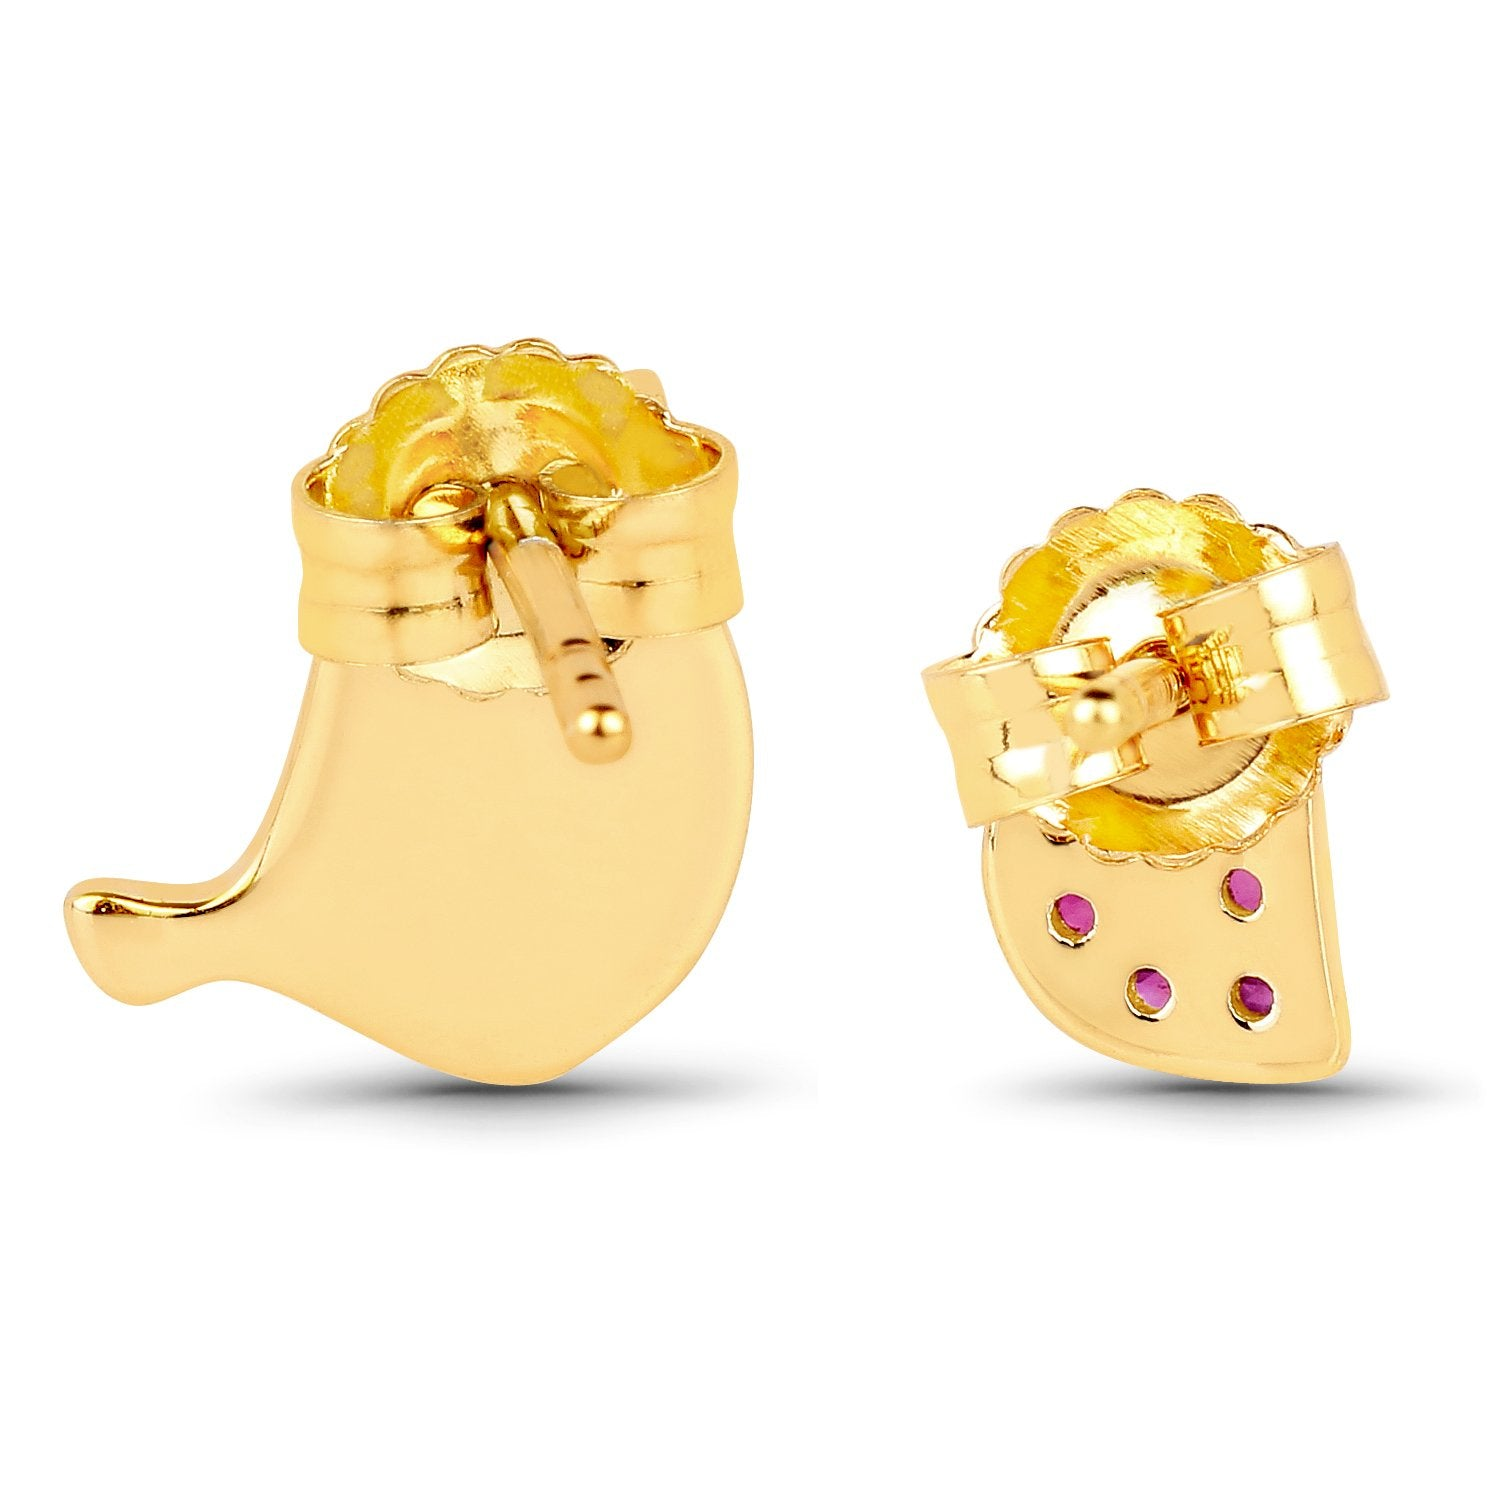 LoveHuang 0.20 Carats Genuine Ruby Bonding Bird Earrings Solid .925 Sterling Silver With 18KT Yellow Gold Plating